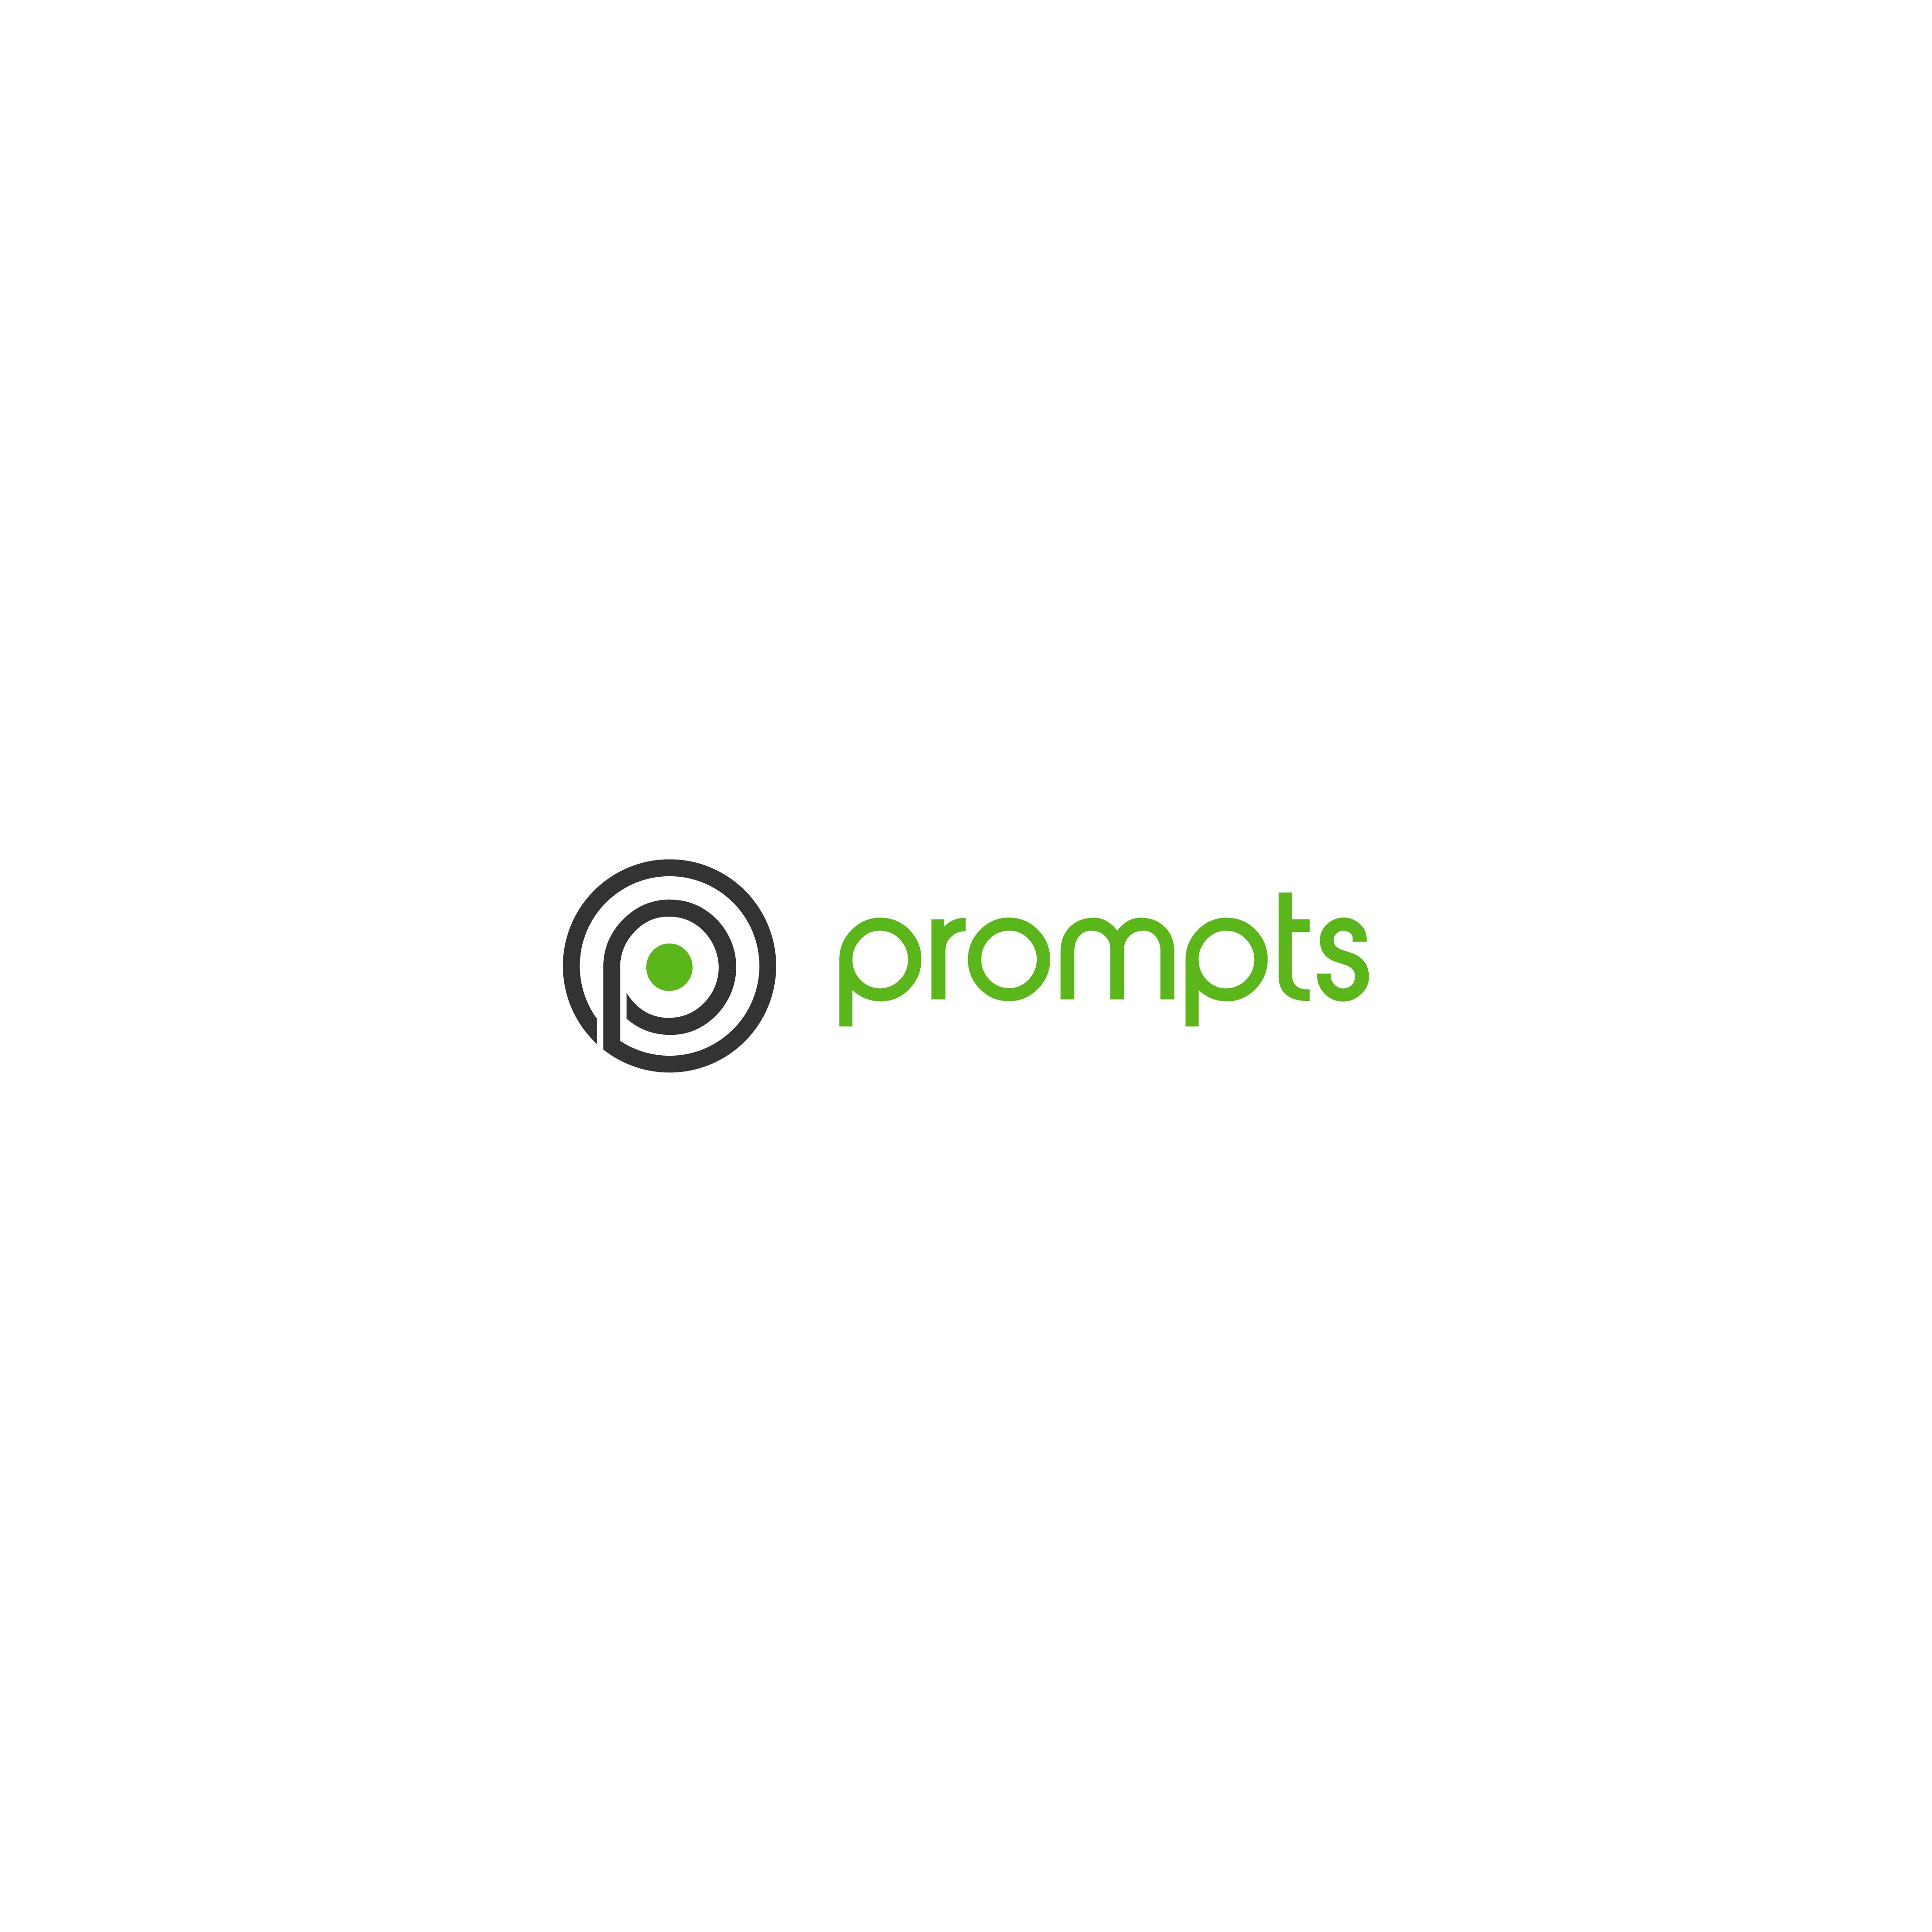 Let the worlds know about Prompts Predictive Marketing